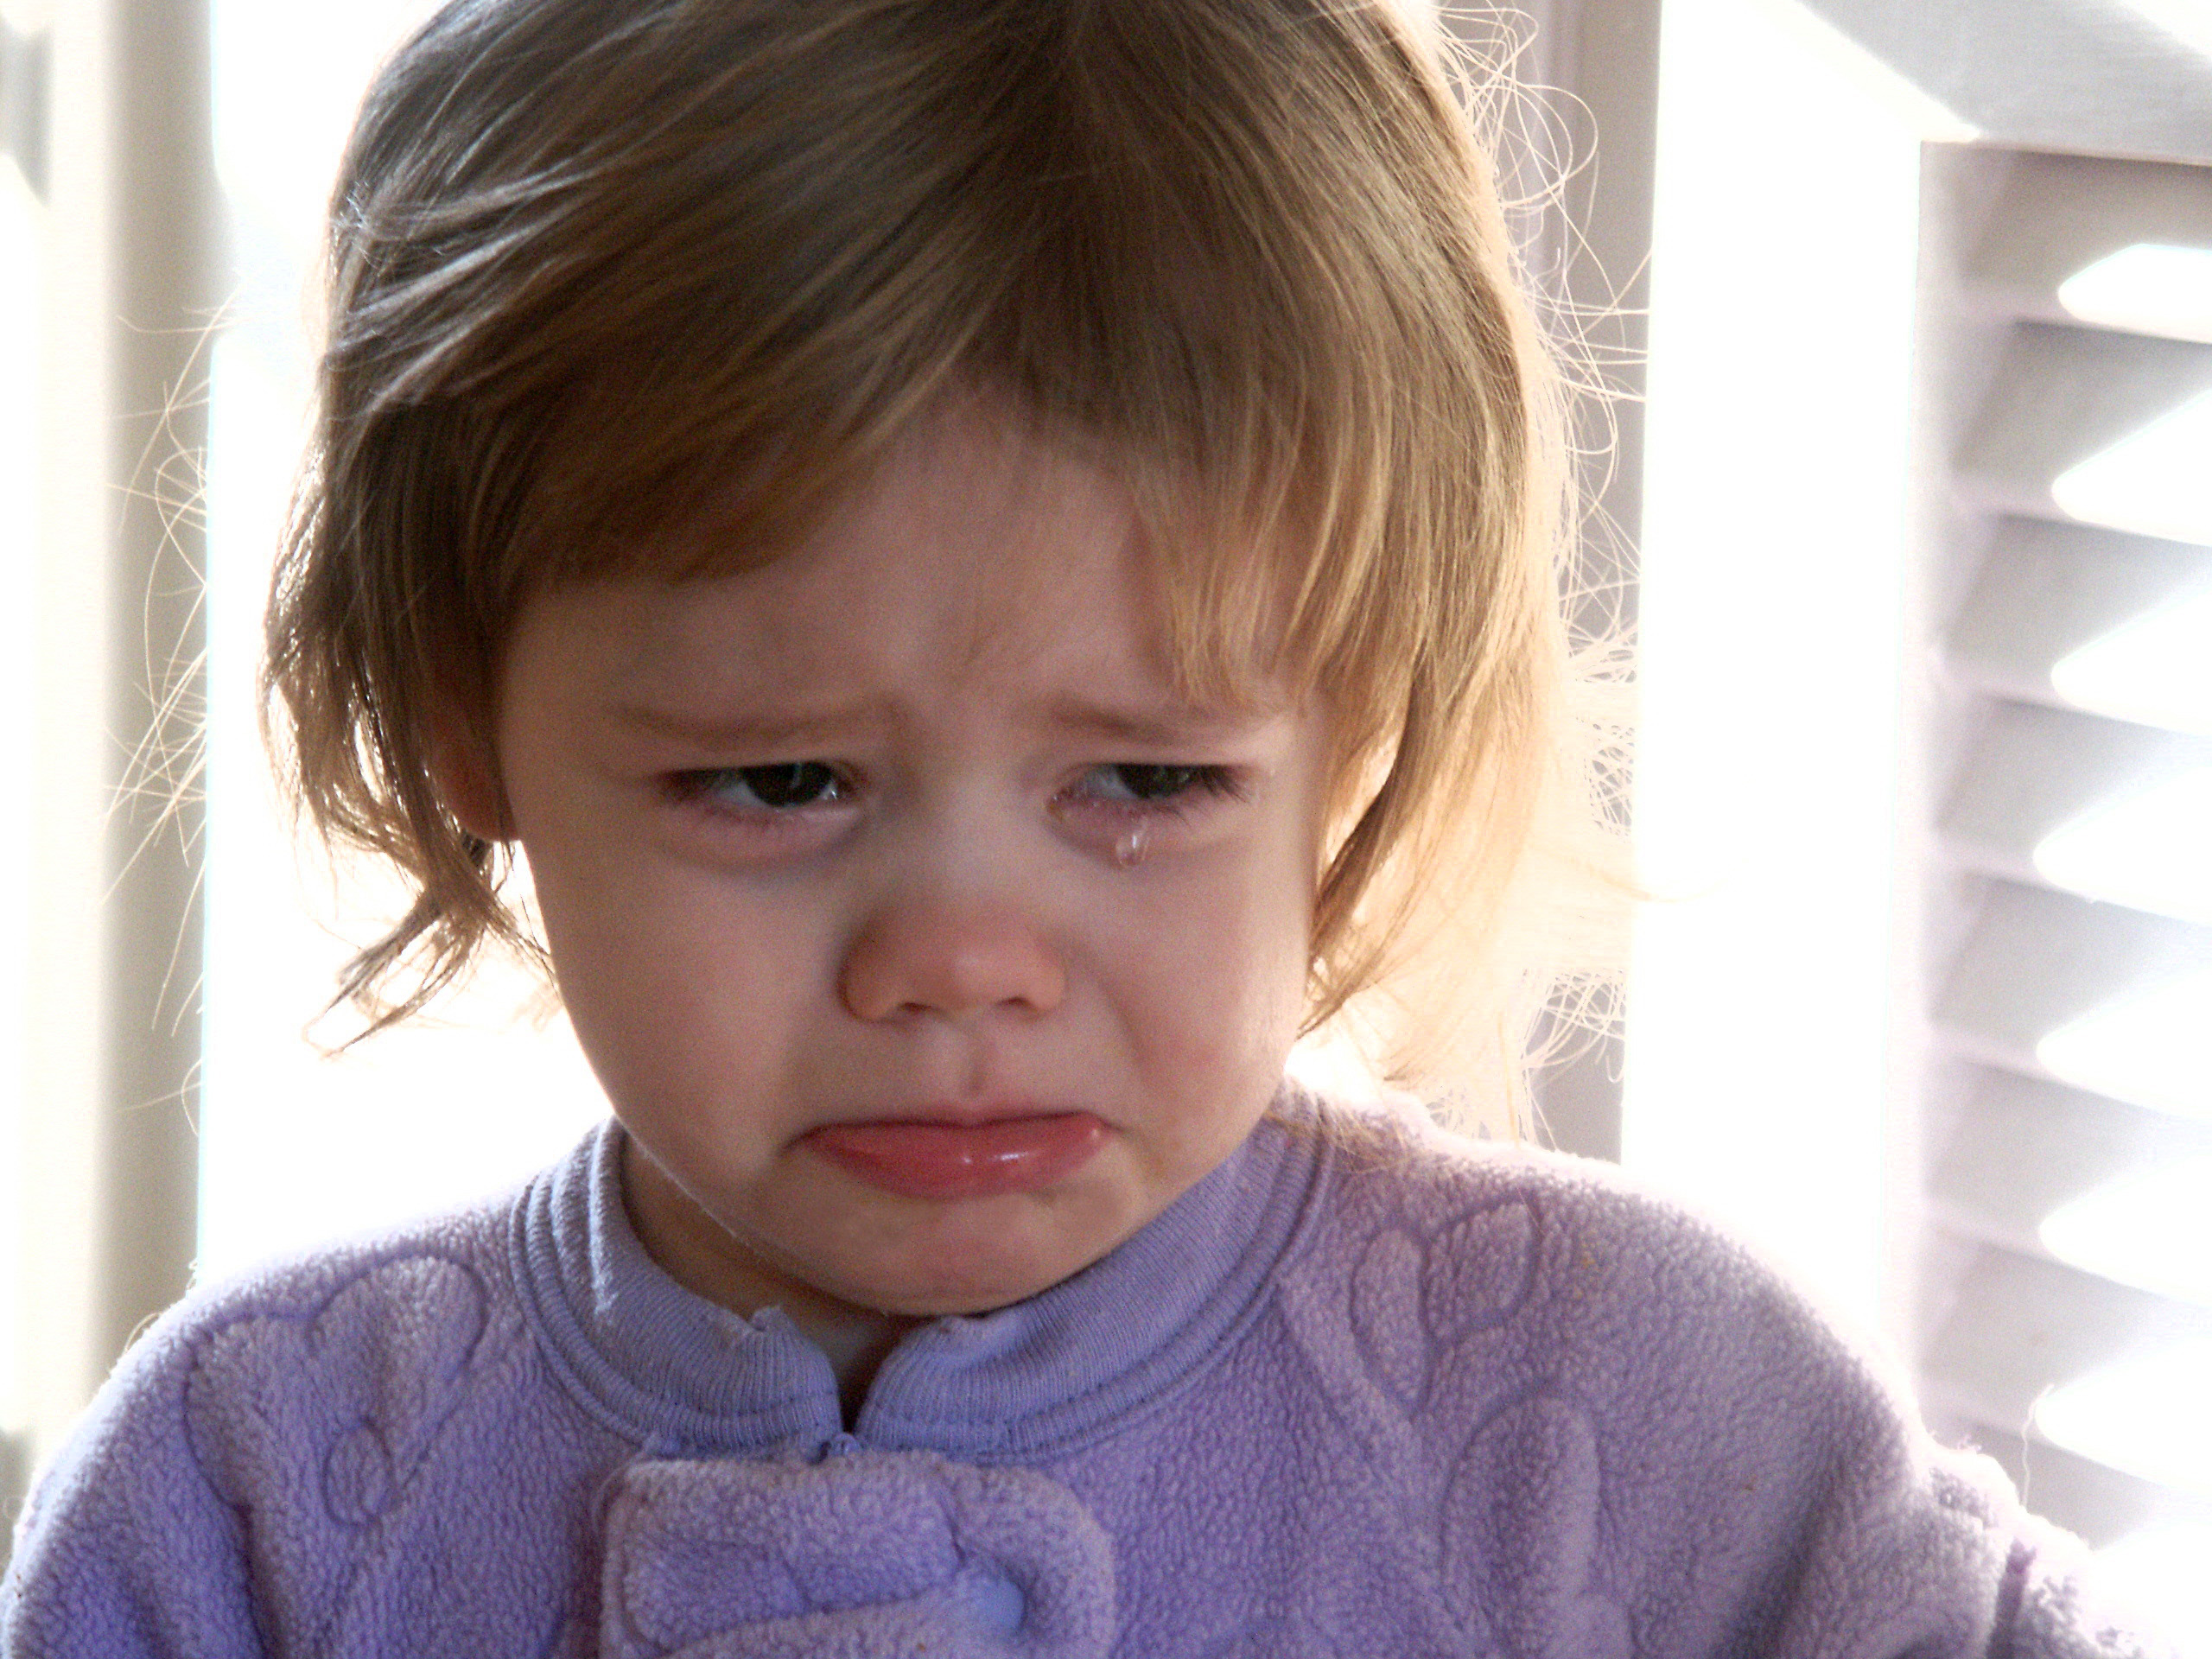 File:Crying-girl.jpg